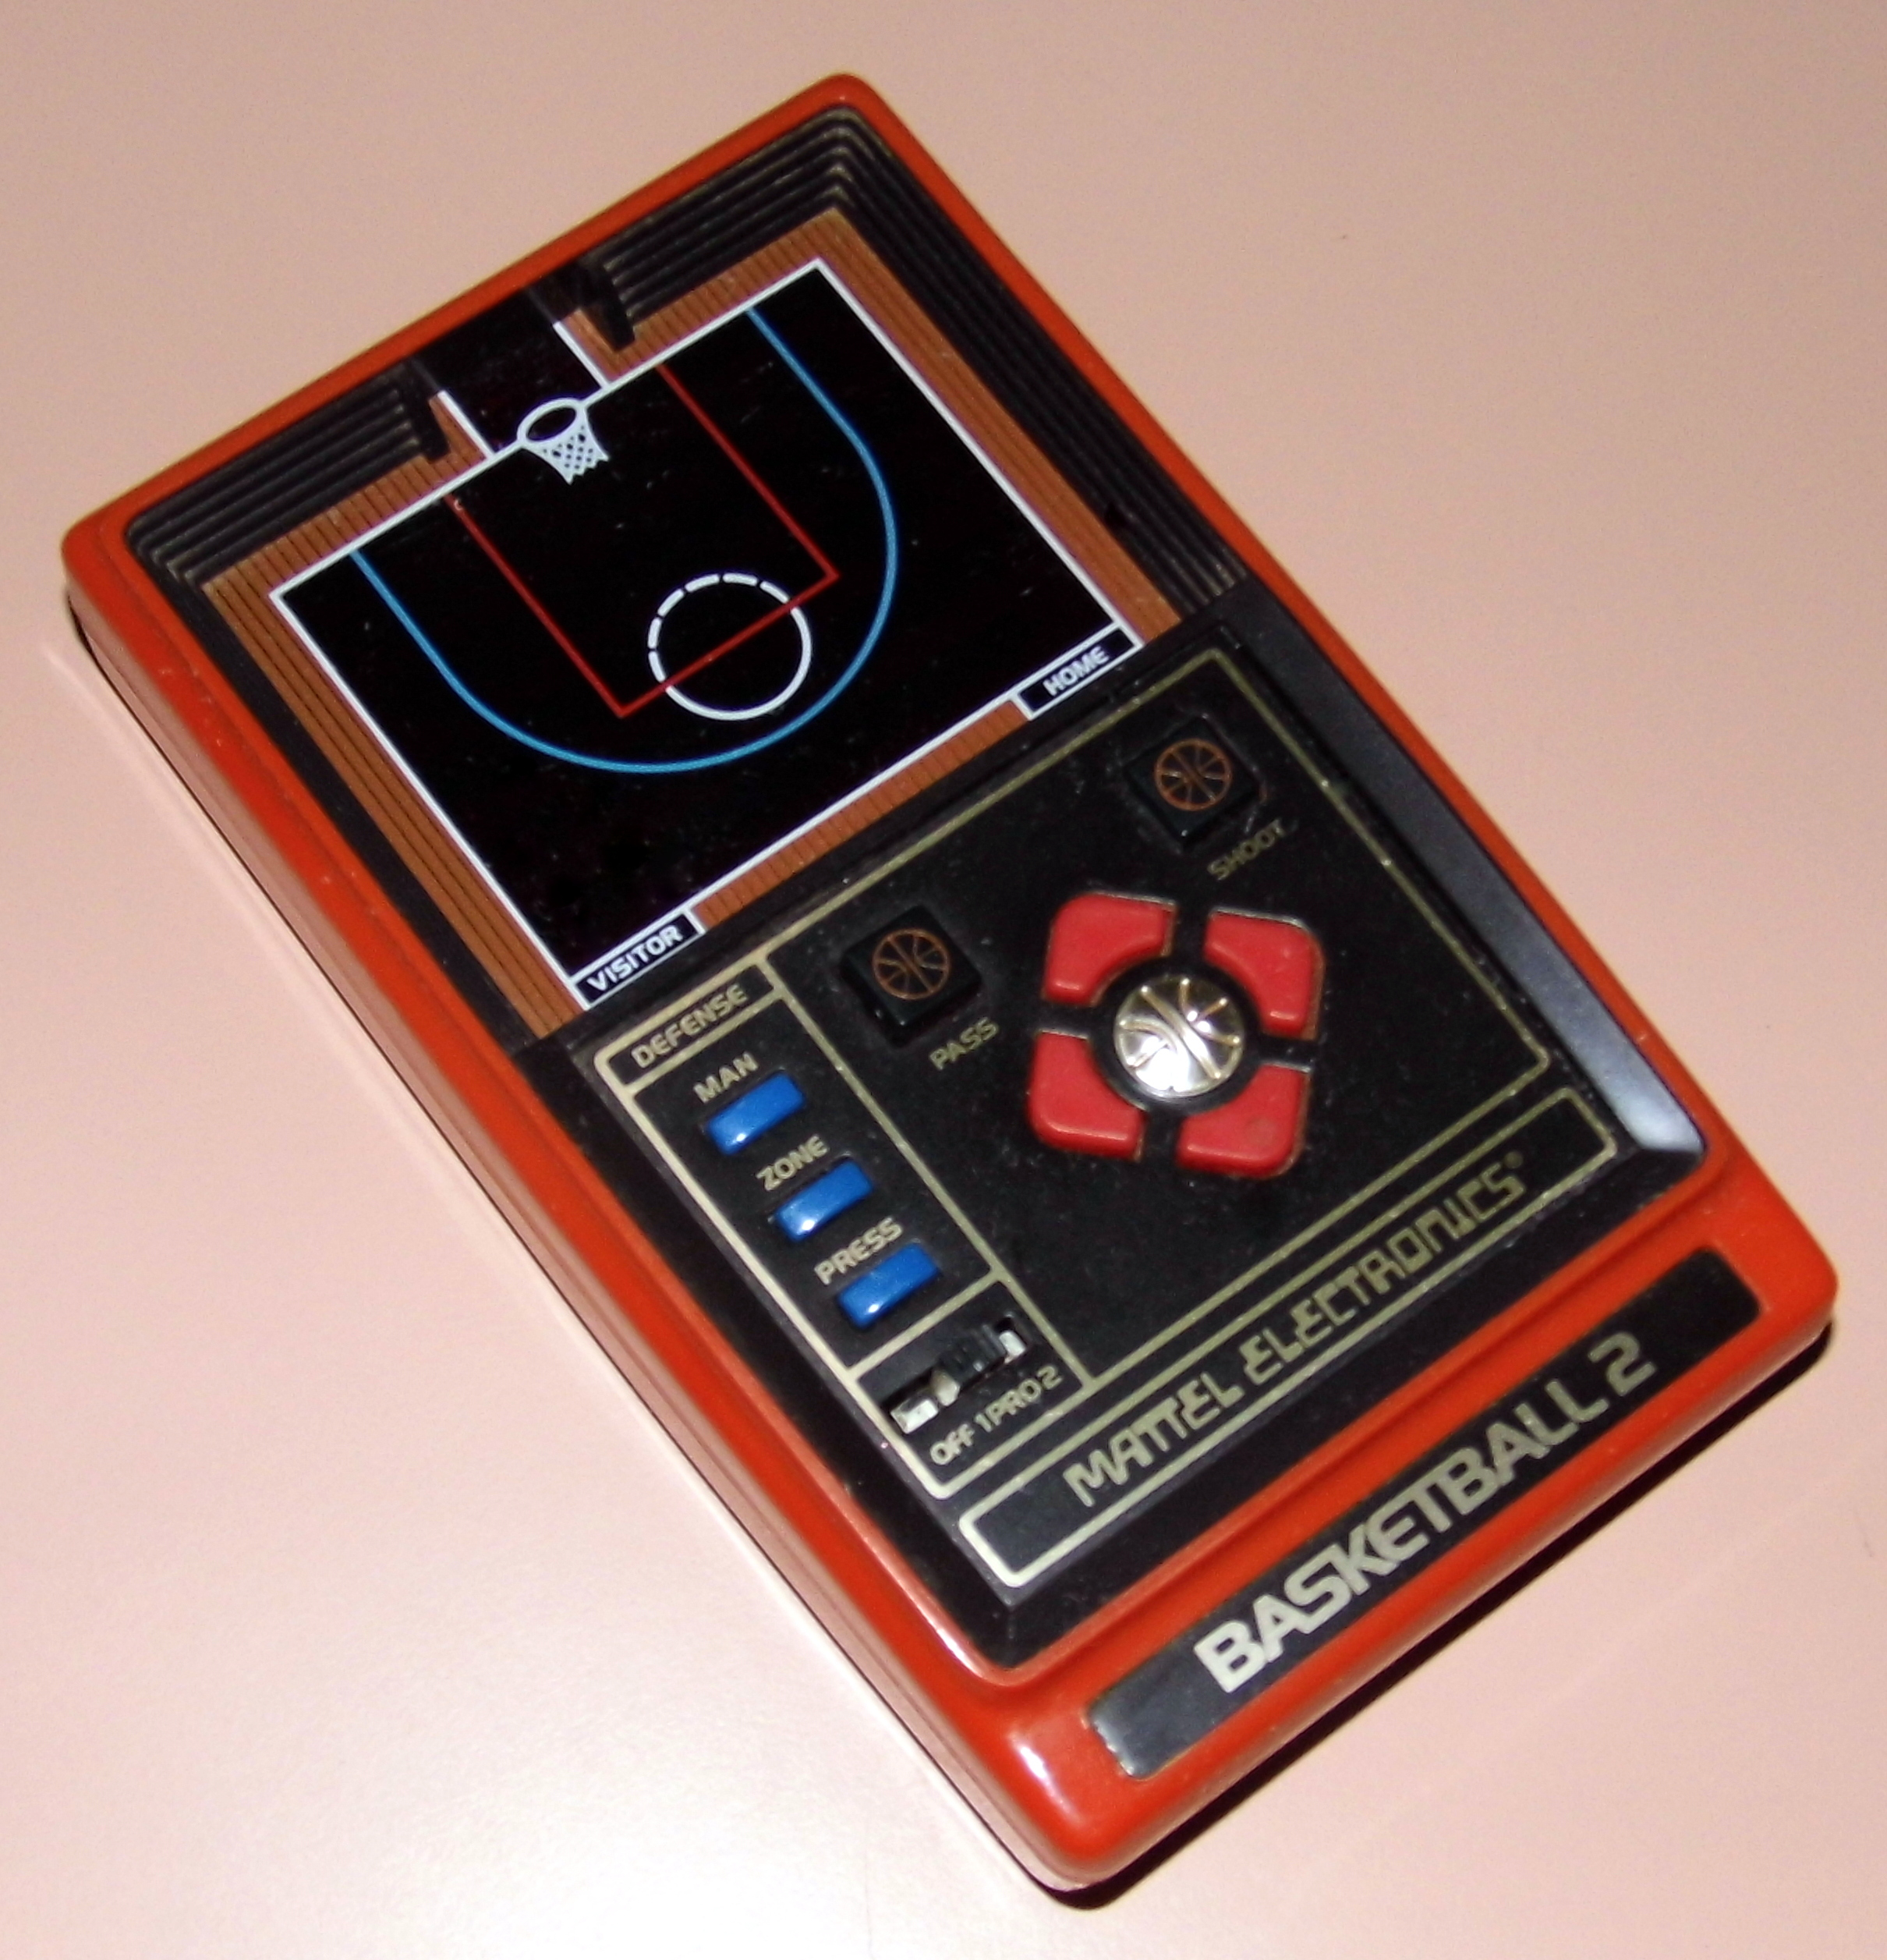 IMAGE(https://upload.wikimedia.org/wikipedia/commons/e/ee/Basketball_2_by_Mattel_Electronics,_Made_In_Hong_Kong,_Copyright_1979_(LED_Electronic_Handheld_Game).jpg)